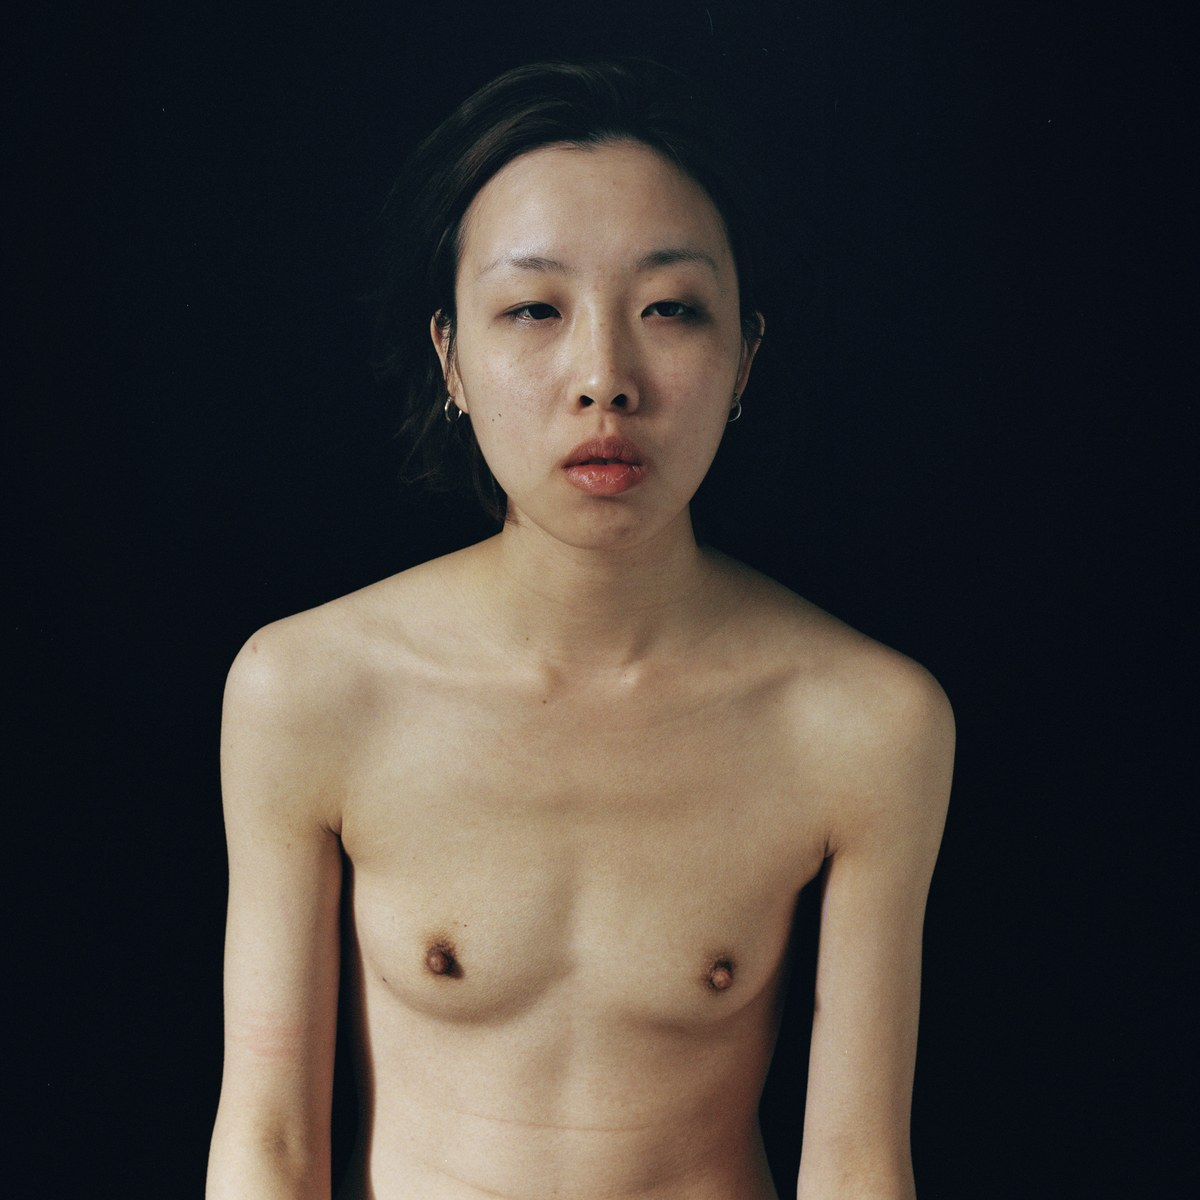 """Terms & Conditions"": La exhibición fotográfica que desafía la censura en redes sociales con #FreeTheNipple"